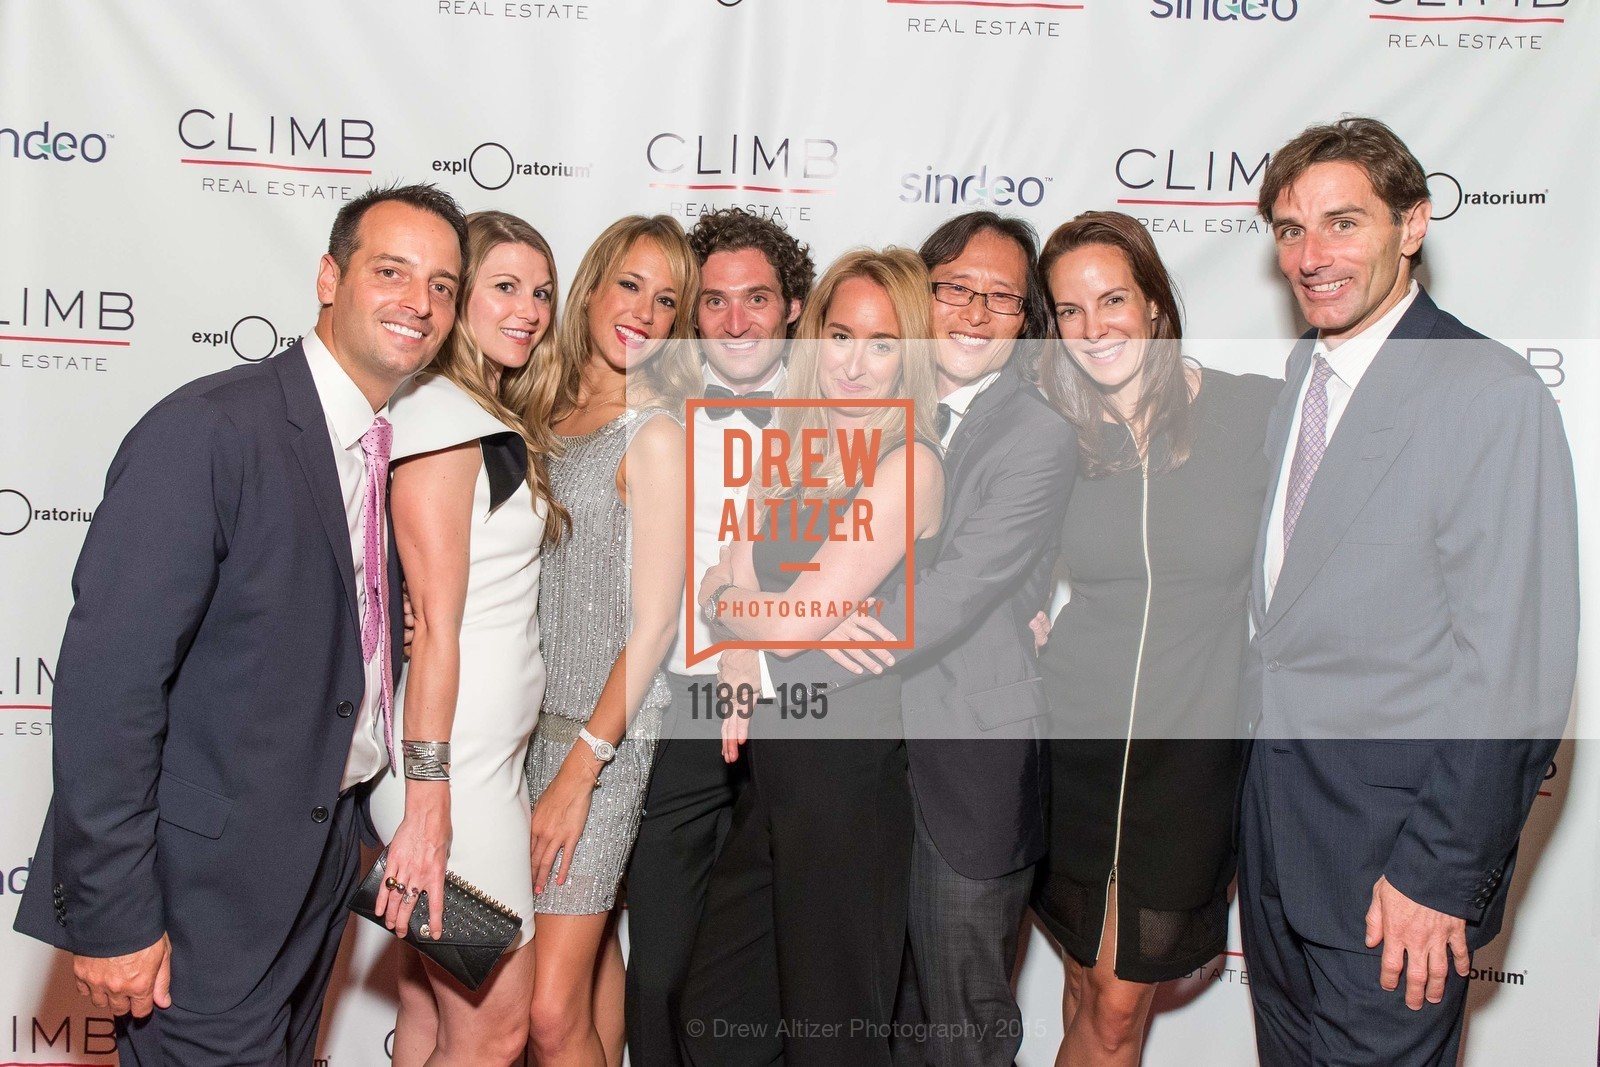 Joe Alioto Veronese, Anna Sawyer, Alexandra Duisberg, Justin Fichelson, Nicole Bulick, Richard Ling, Julie Veronese, Paul Pelosi Jr., Climb Real Estate and Sindeo Celebrate the Launch of Million Dollar Listing San Francisco, Local Edition San Francisco. 691 Market St, July 8th, 2015,Drew Altizer, Drew Altizer Photography, full-service agency, private events, San Francisco photographer, photographer california